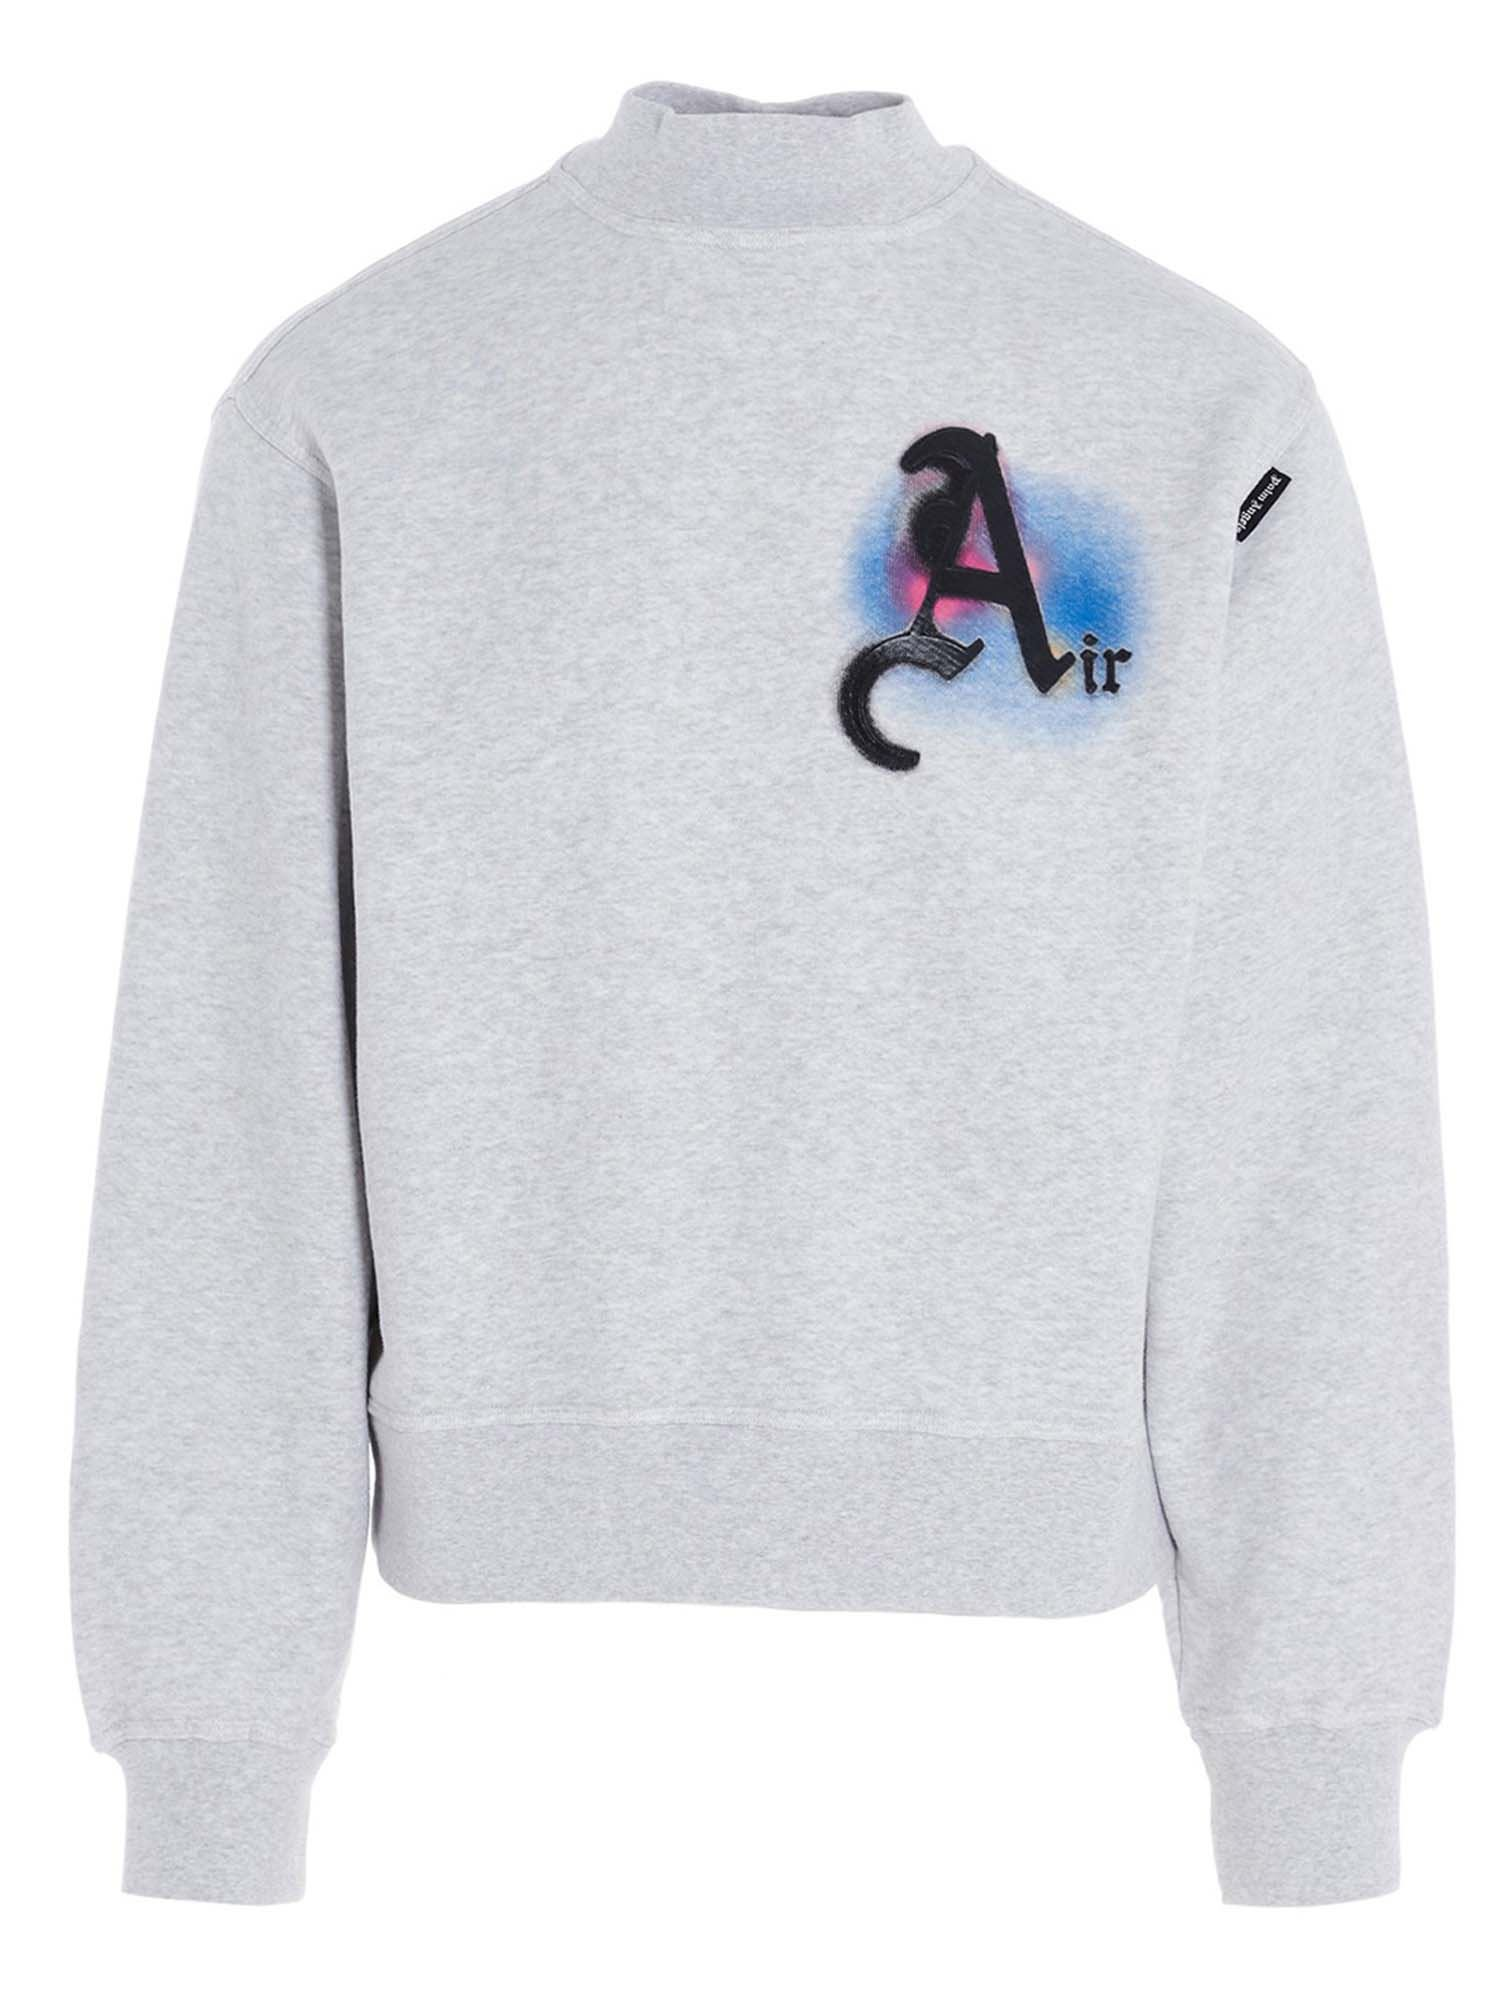 Palm Angels AIR MOCK SWEATSHIRT IN GREY